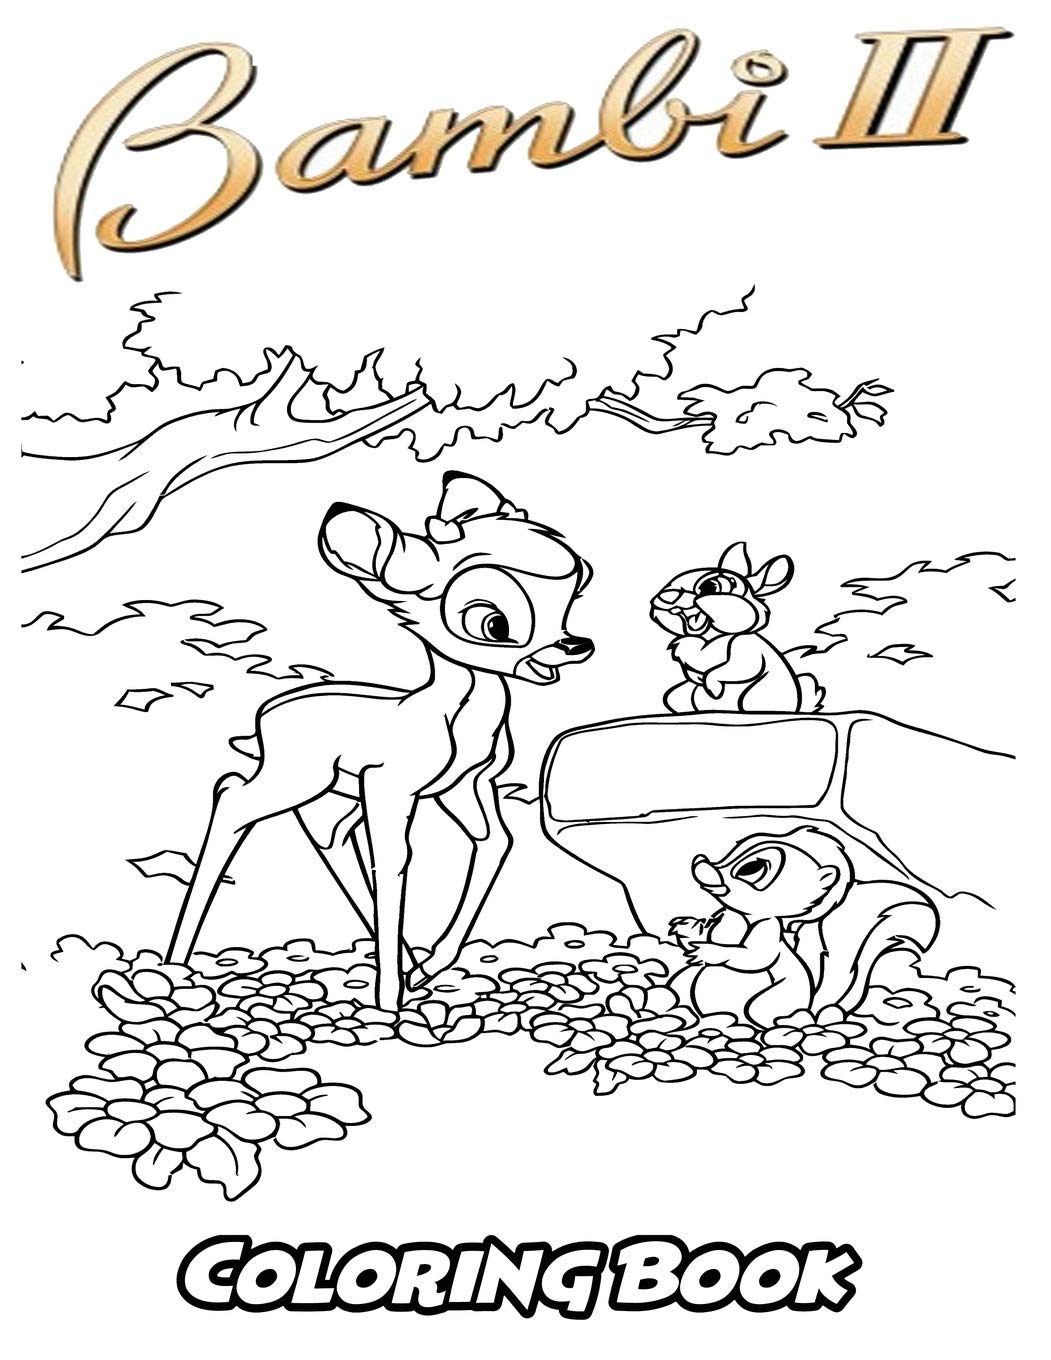 Bambi 2 coloring book coloring book for kids and adults activity book with fun easy and relaxing coloring pages perfect for children ages 3 5 6 8